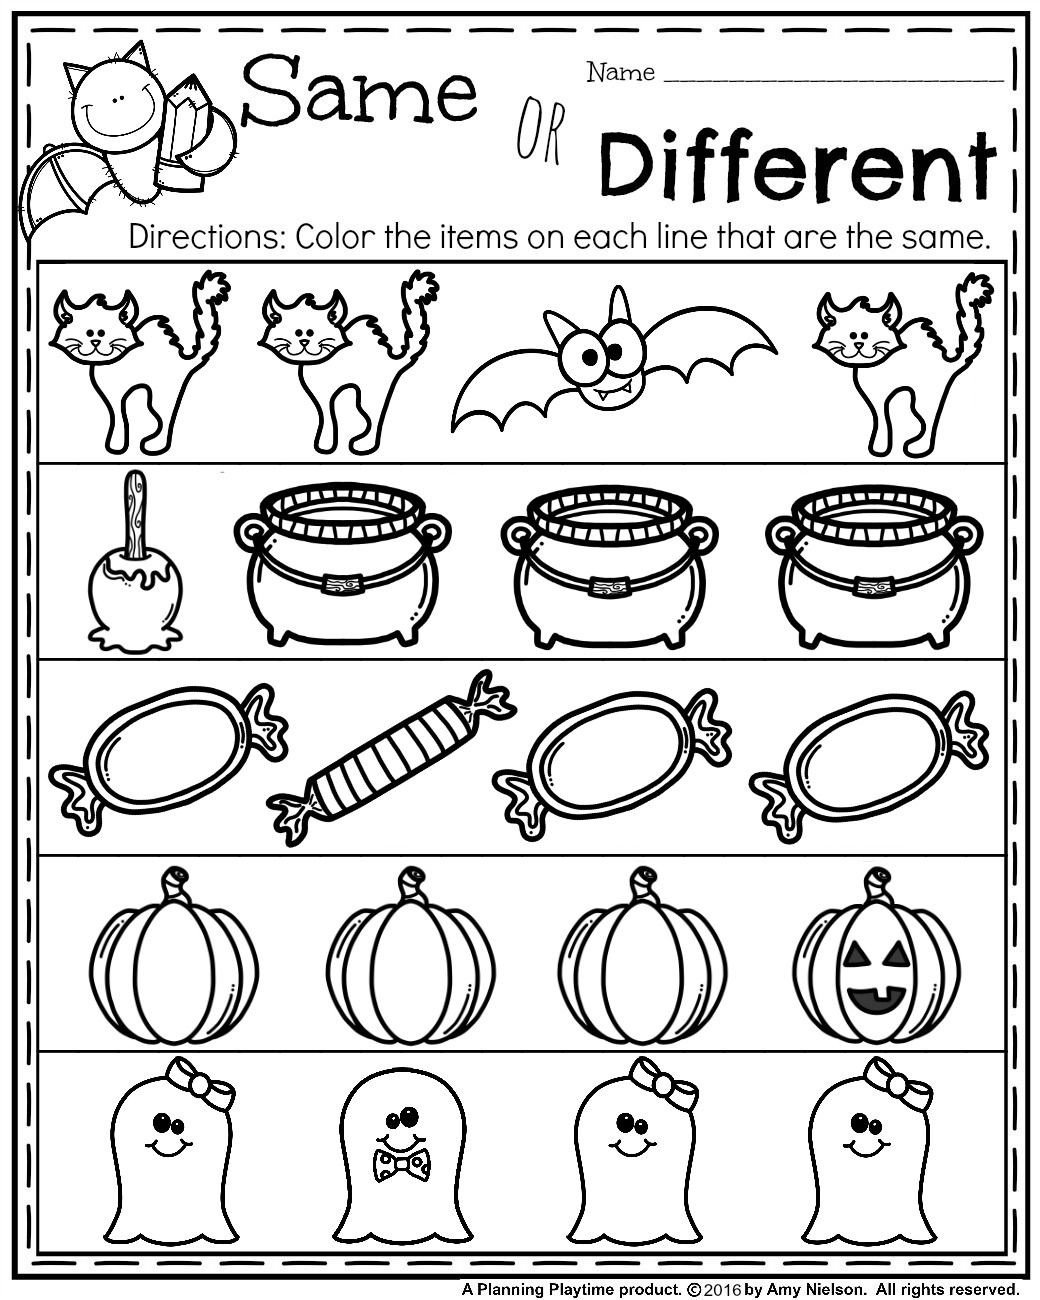 Free Kindergarten Halloween Worksheets Printable October Preschool Worksheets Planning Playtime